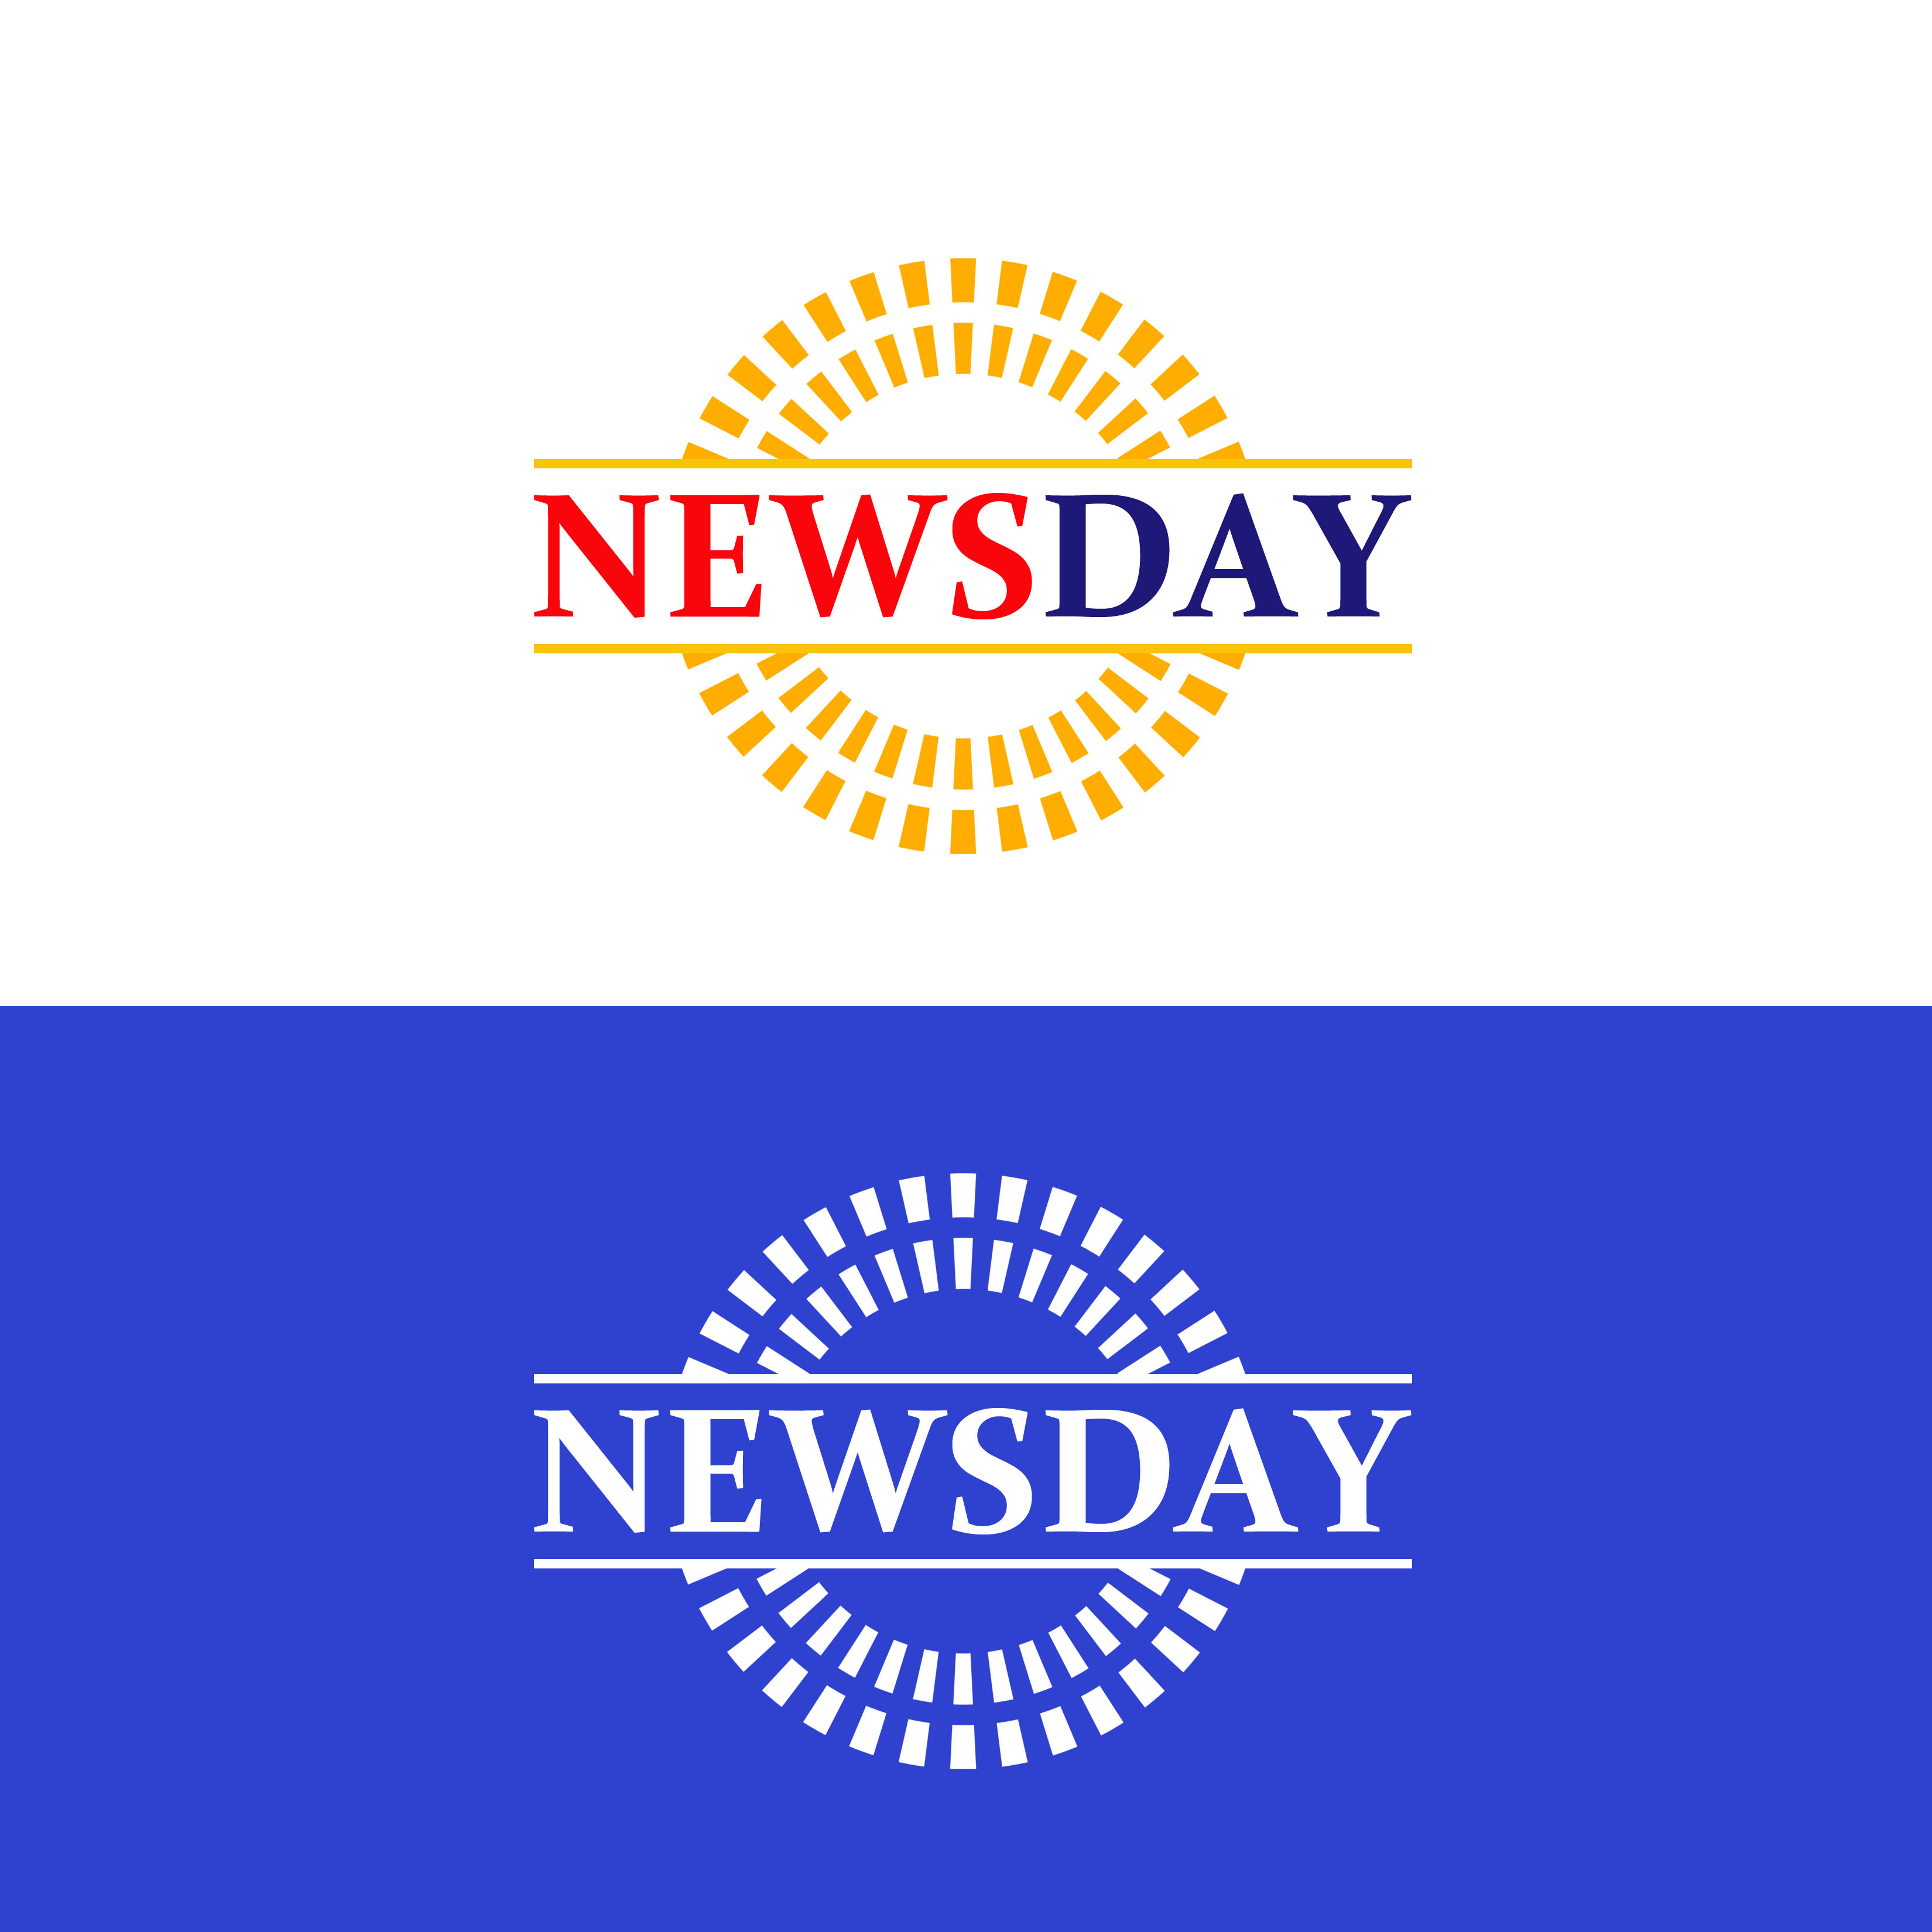 Logo Design by Allan Esclamado - Entry No. 40 in the Logo Design Contest Artistic Logo Design for Newsday.